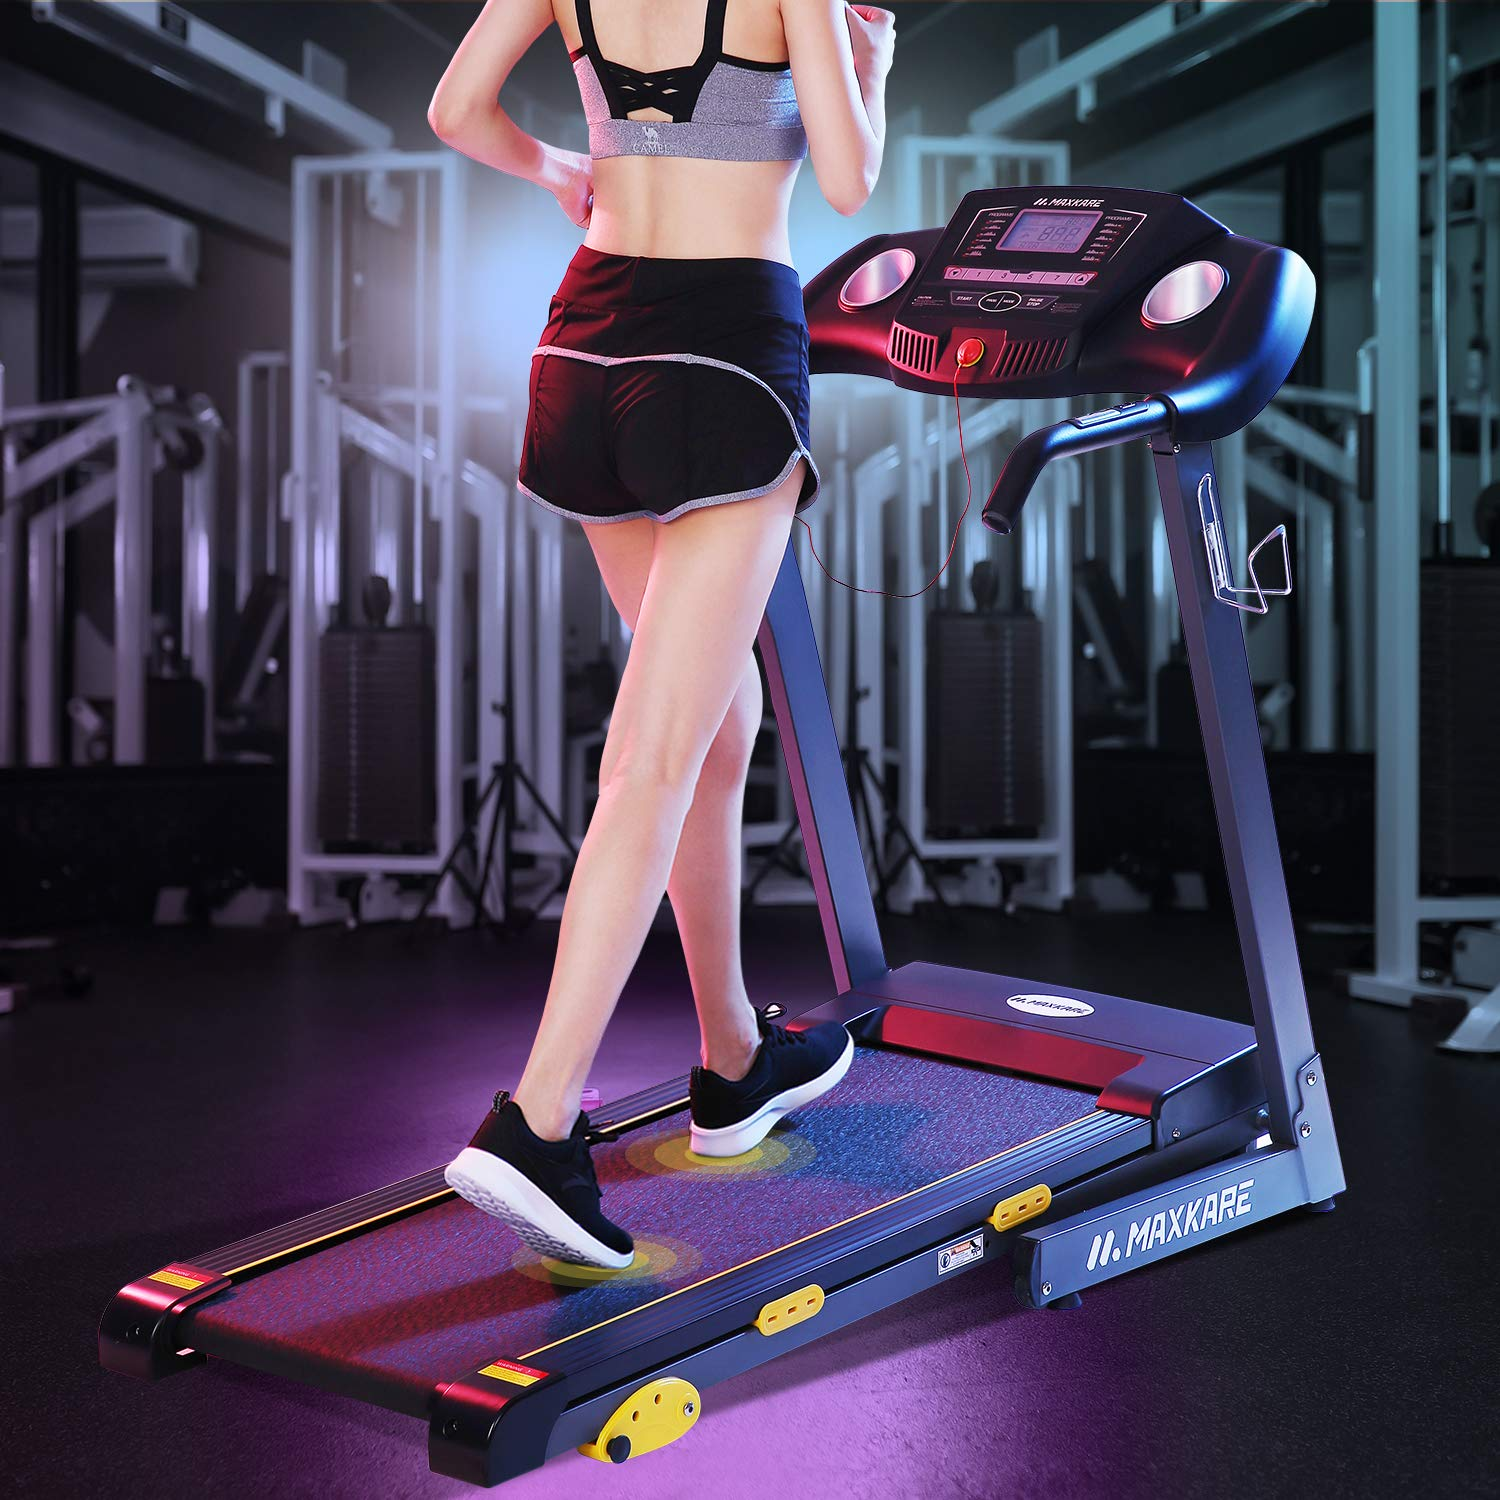 MaxKare Treadmill with 15 Pre-Set Programs, 2.5HP Power, 17'' Wide Tread Belt, 8.5 MPH Max Speed, LCD Screen, Cup Holder & Wheels, Easy Assembly, Black